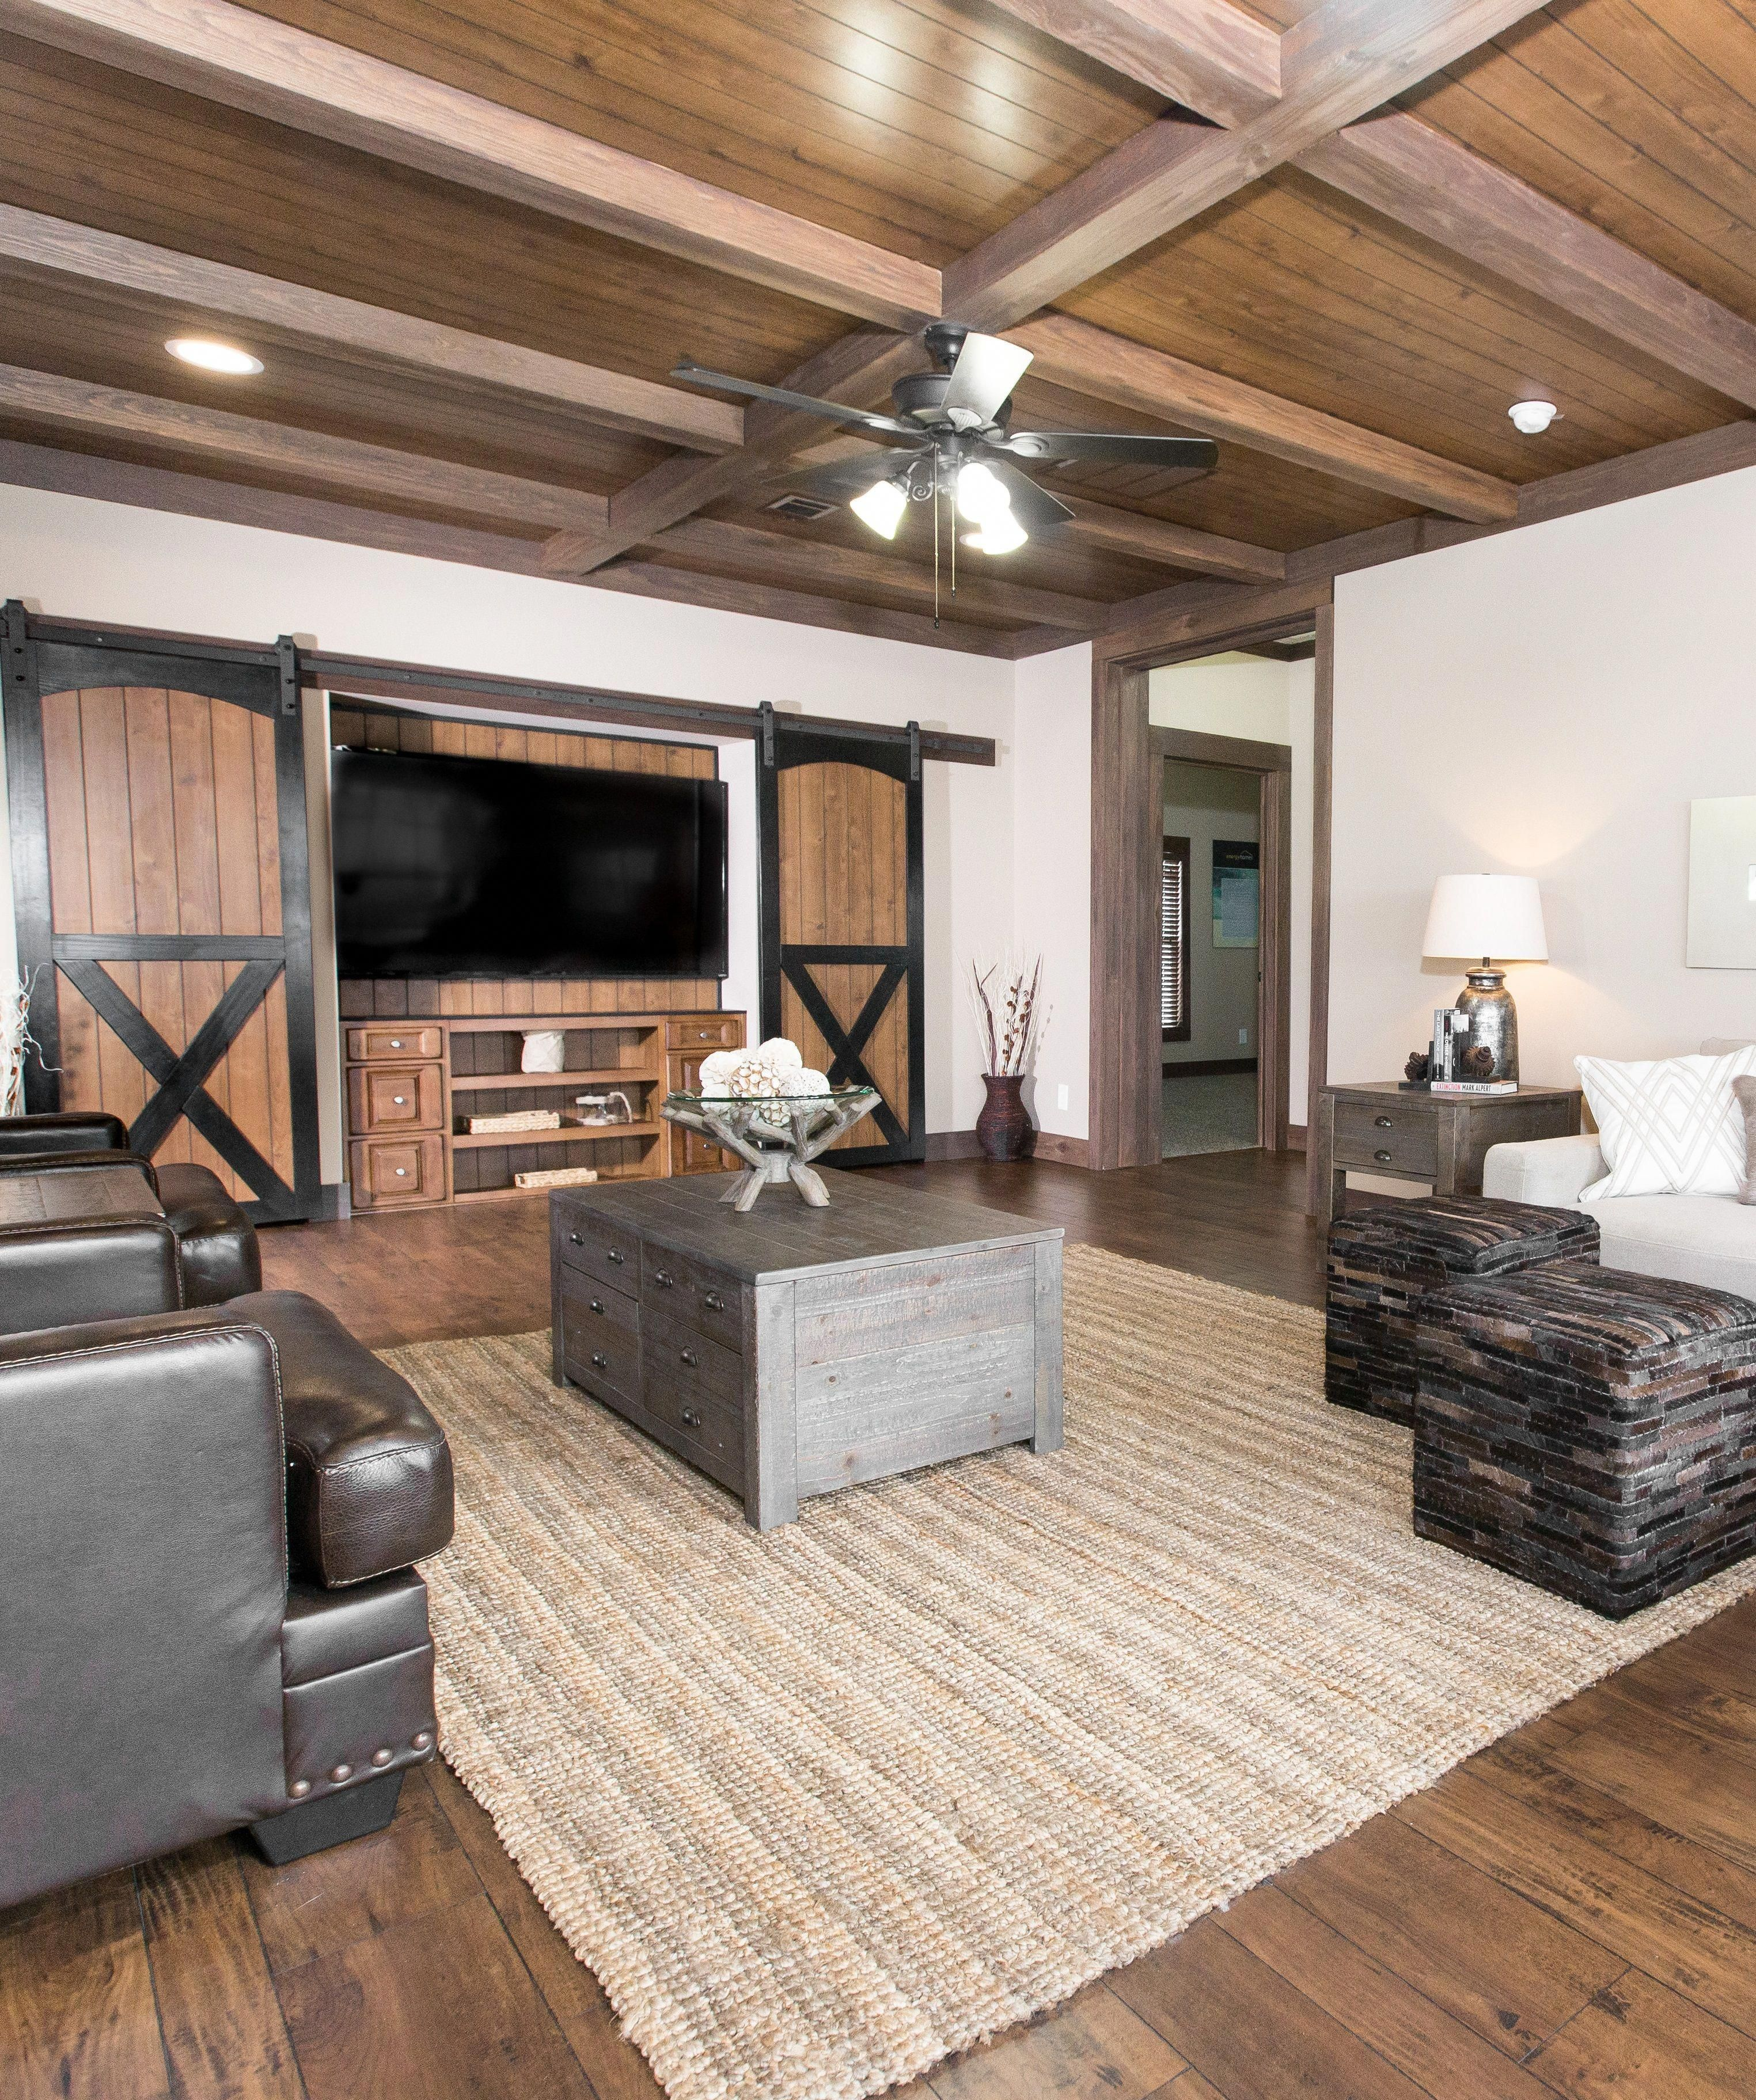 Mobile Homedecorating: Beautiful Barn Doors And Wood Beam Ceilings: The New